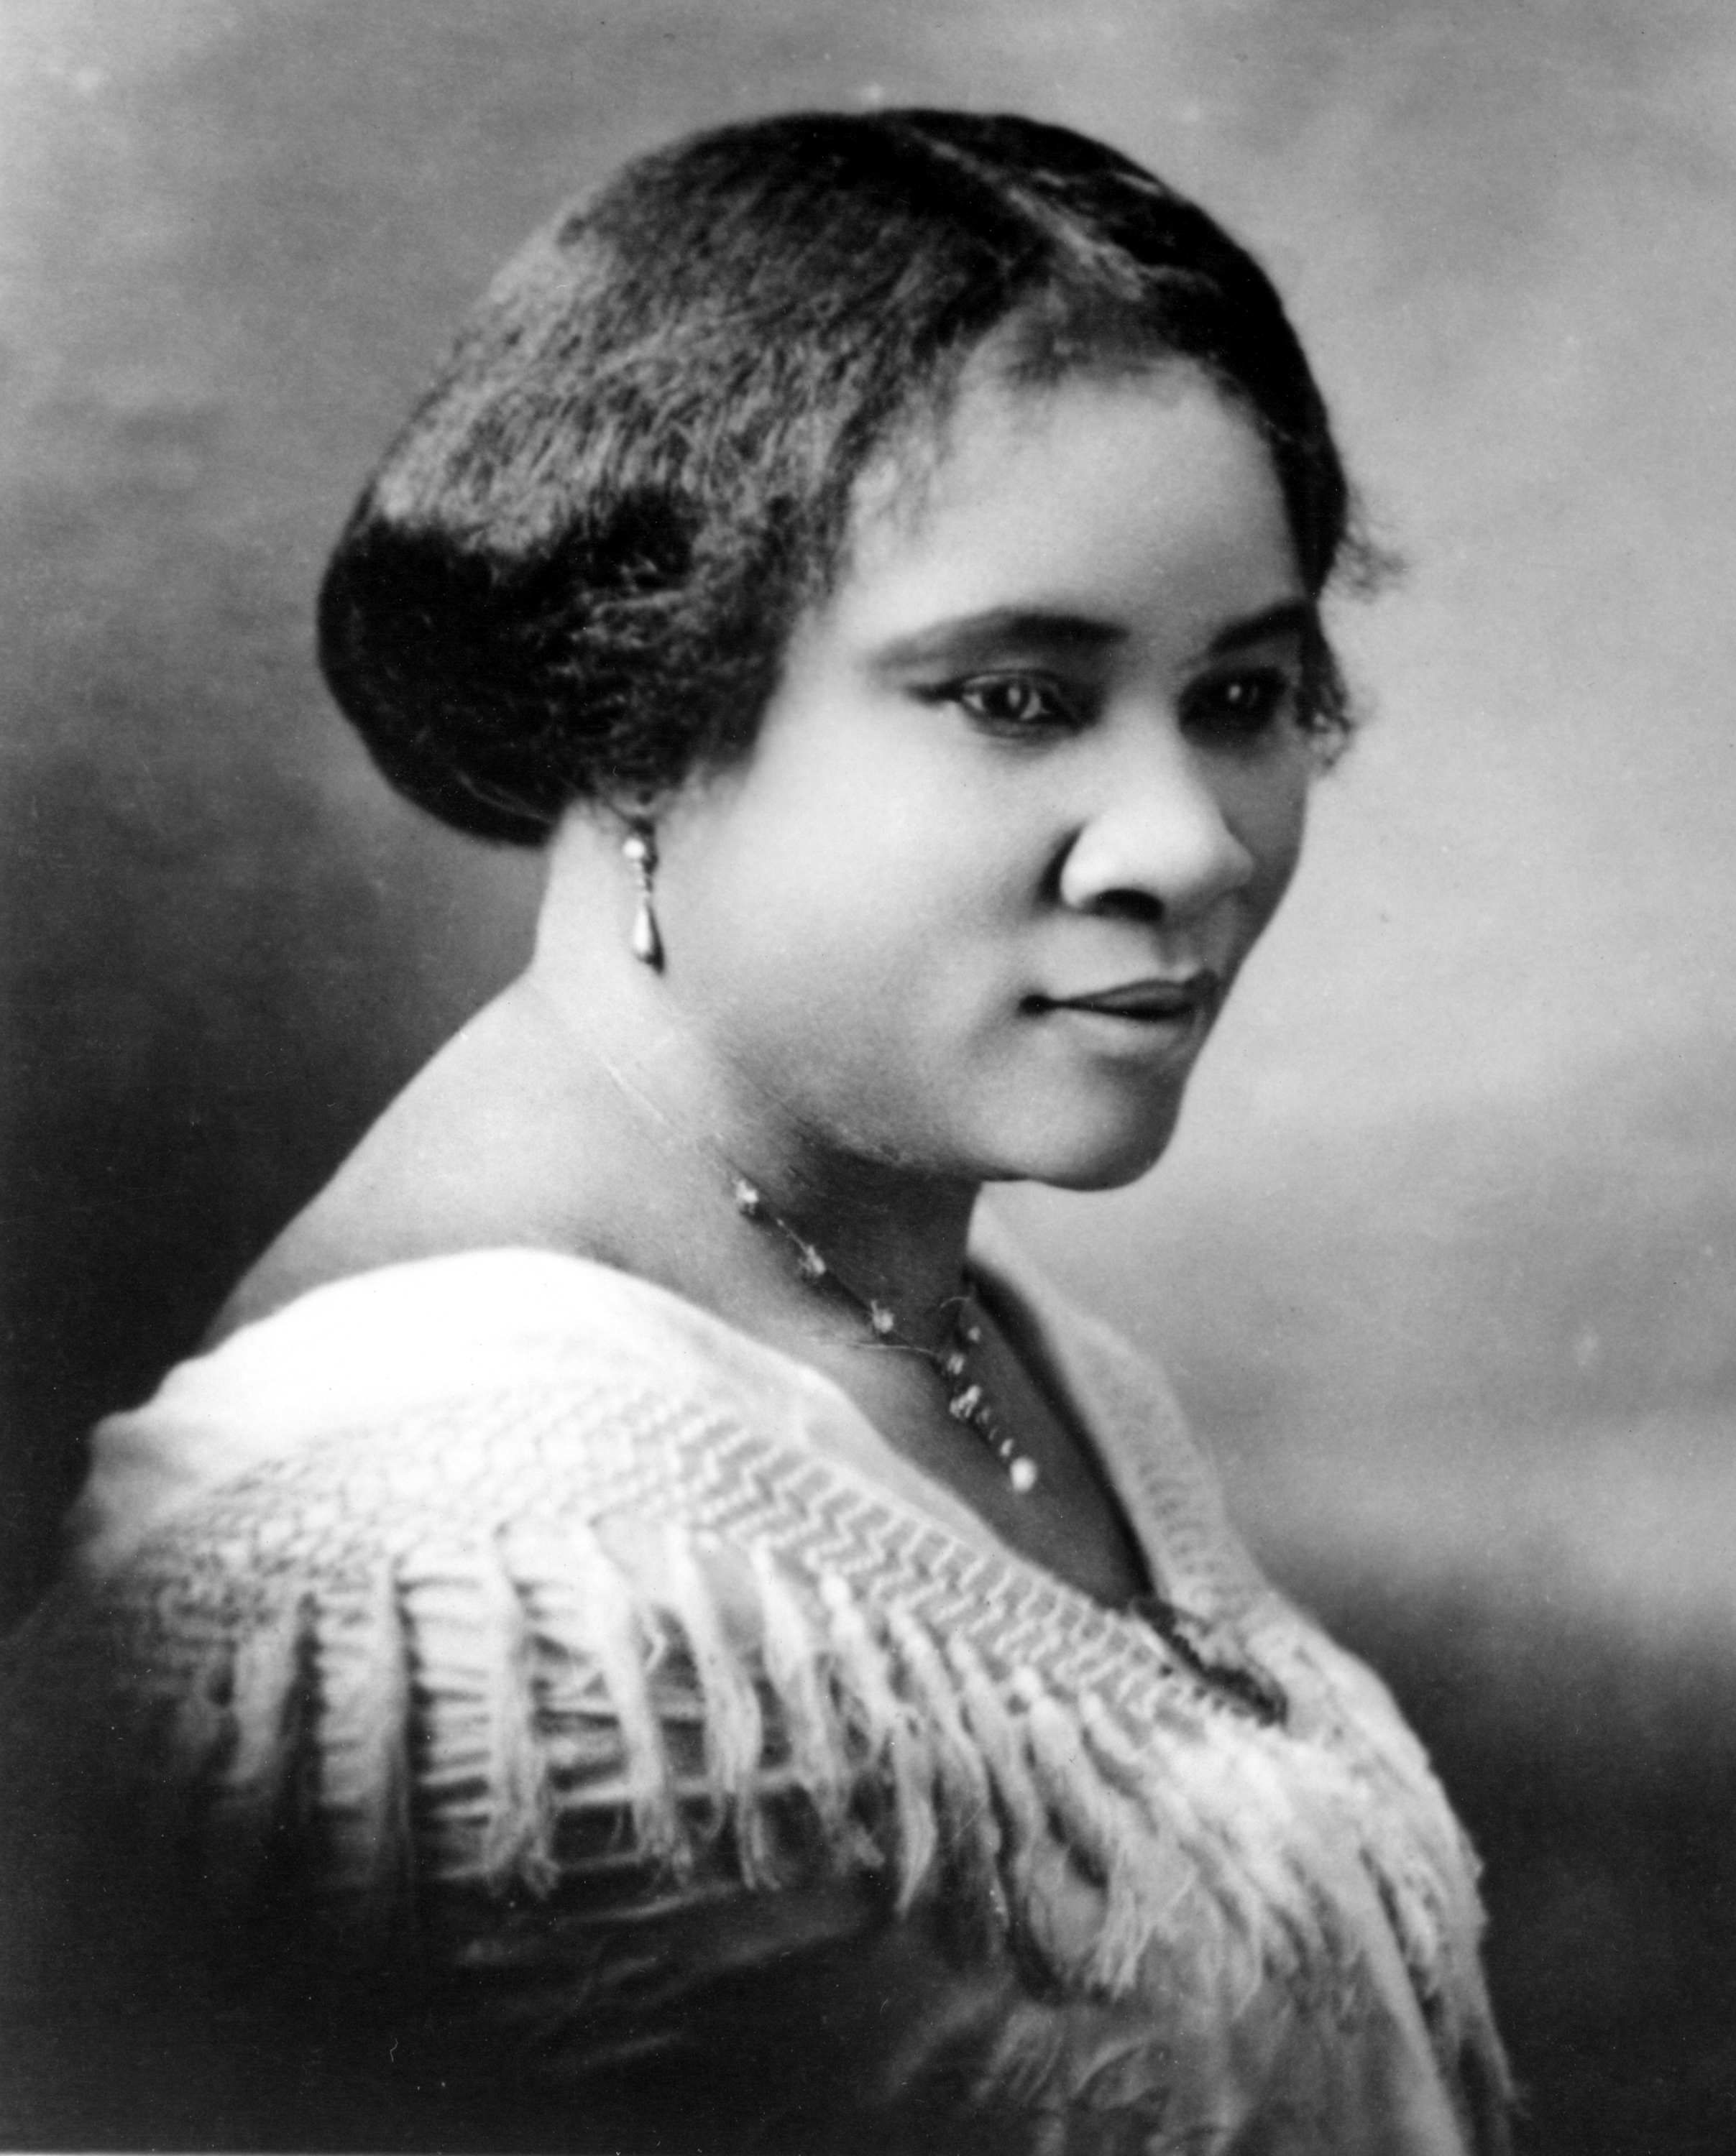 Black Women's Success in the Beauty Industry Started With Madam C.J. Walker